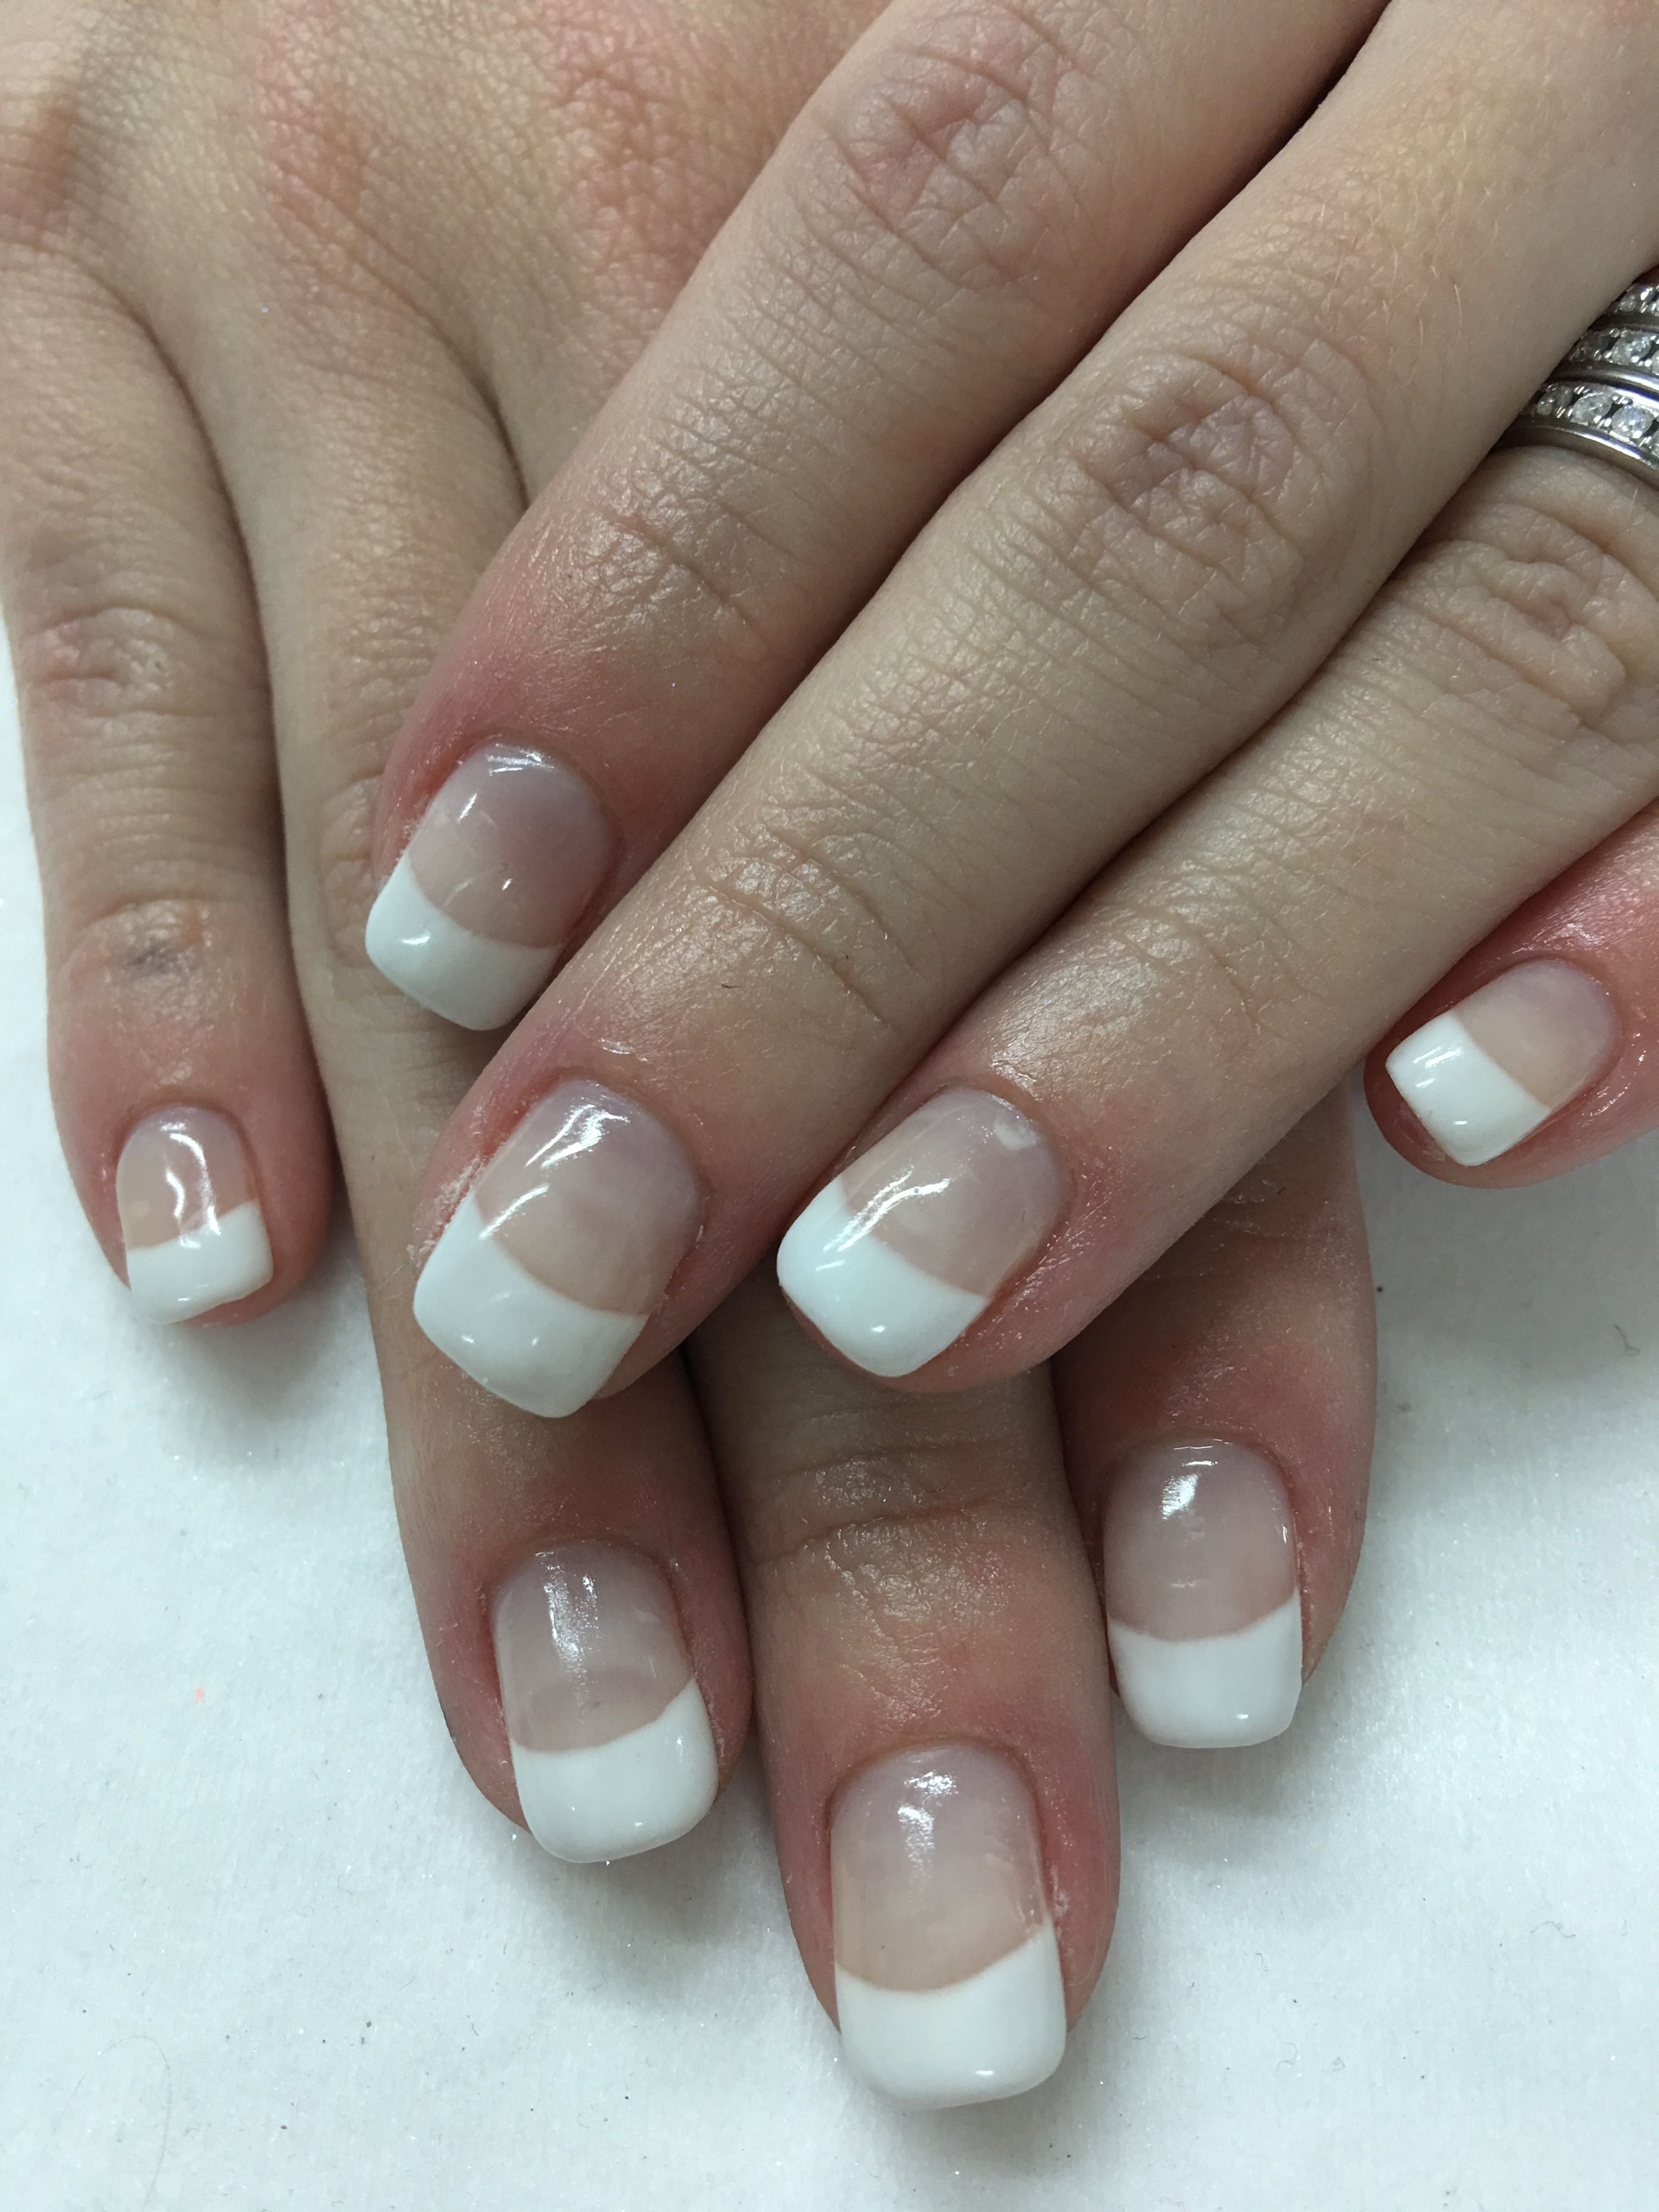 Classic White French Gel Nails   Gel Nail designs   Pinterest